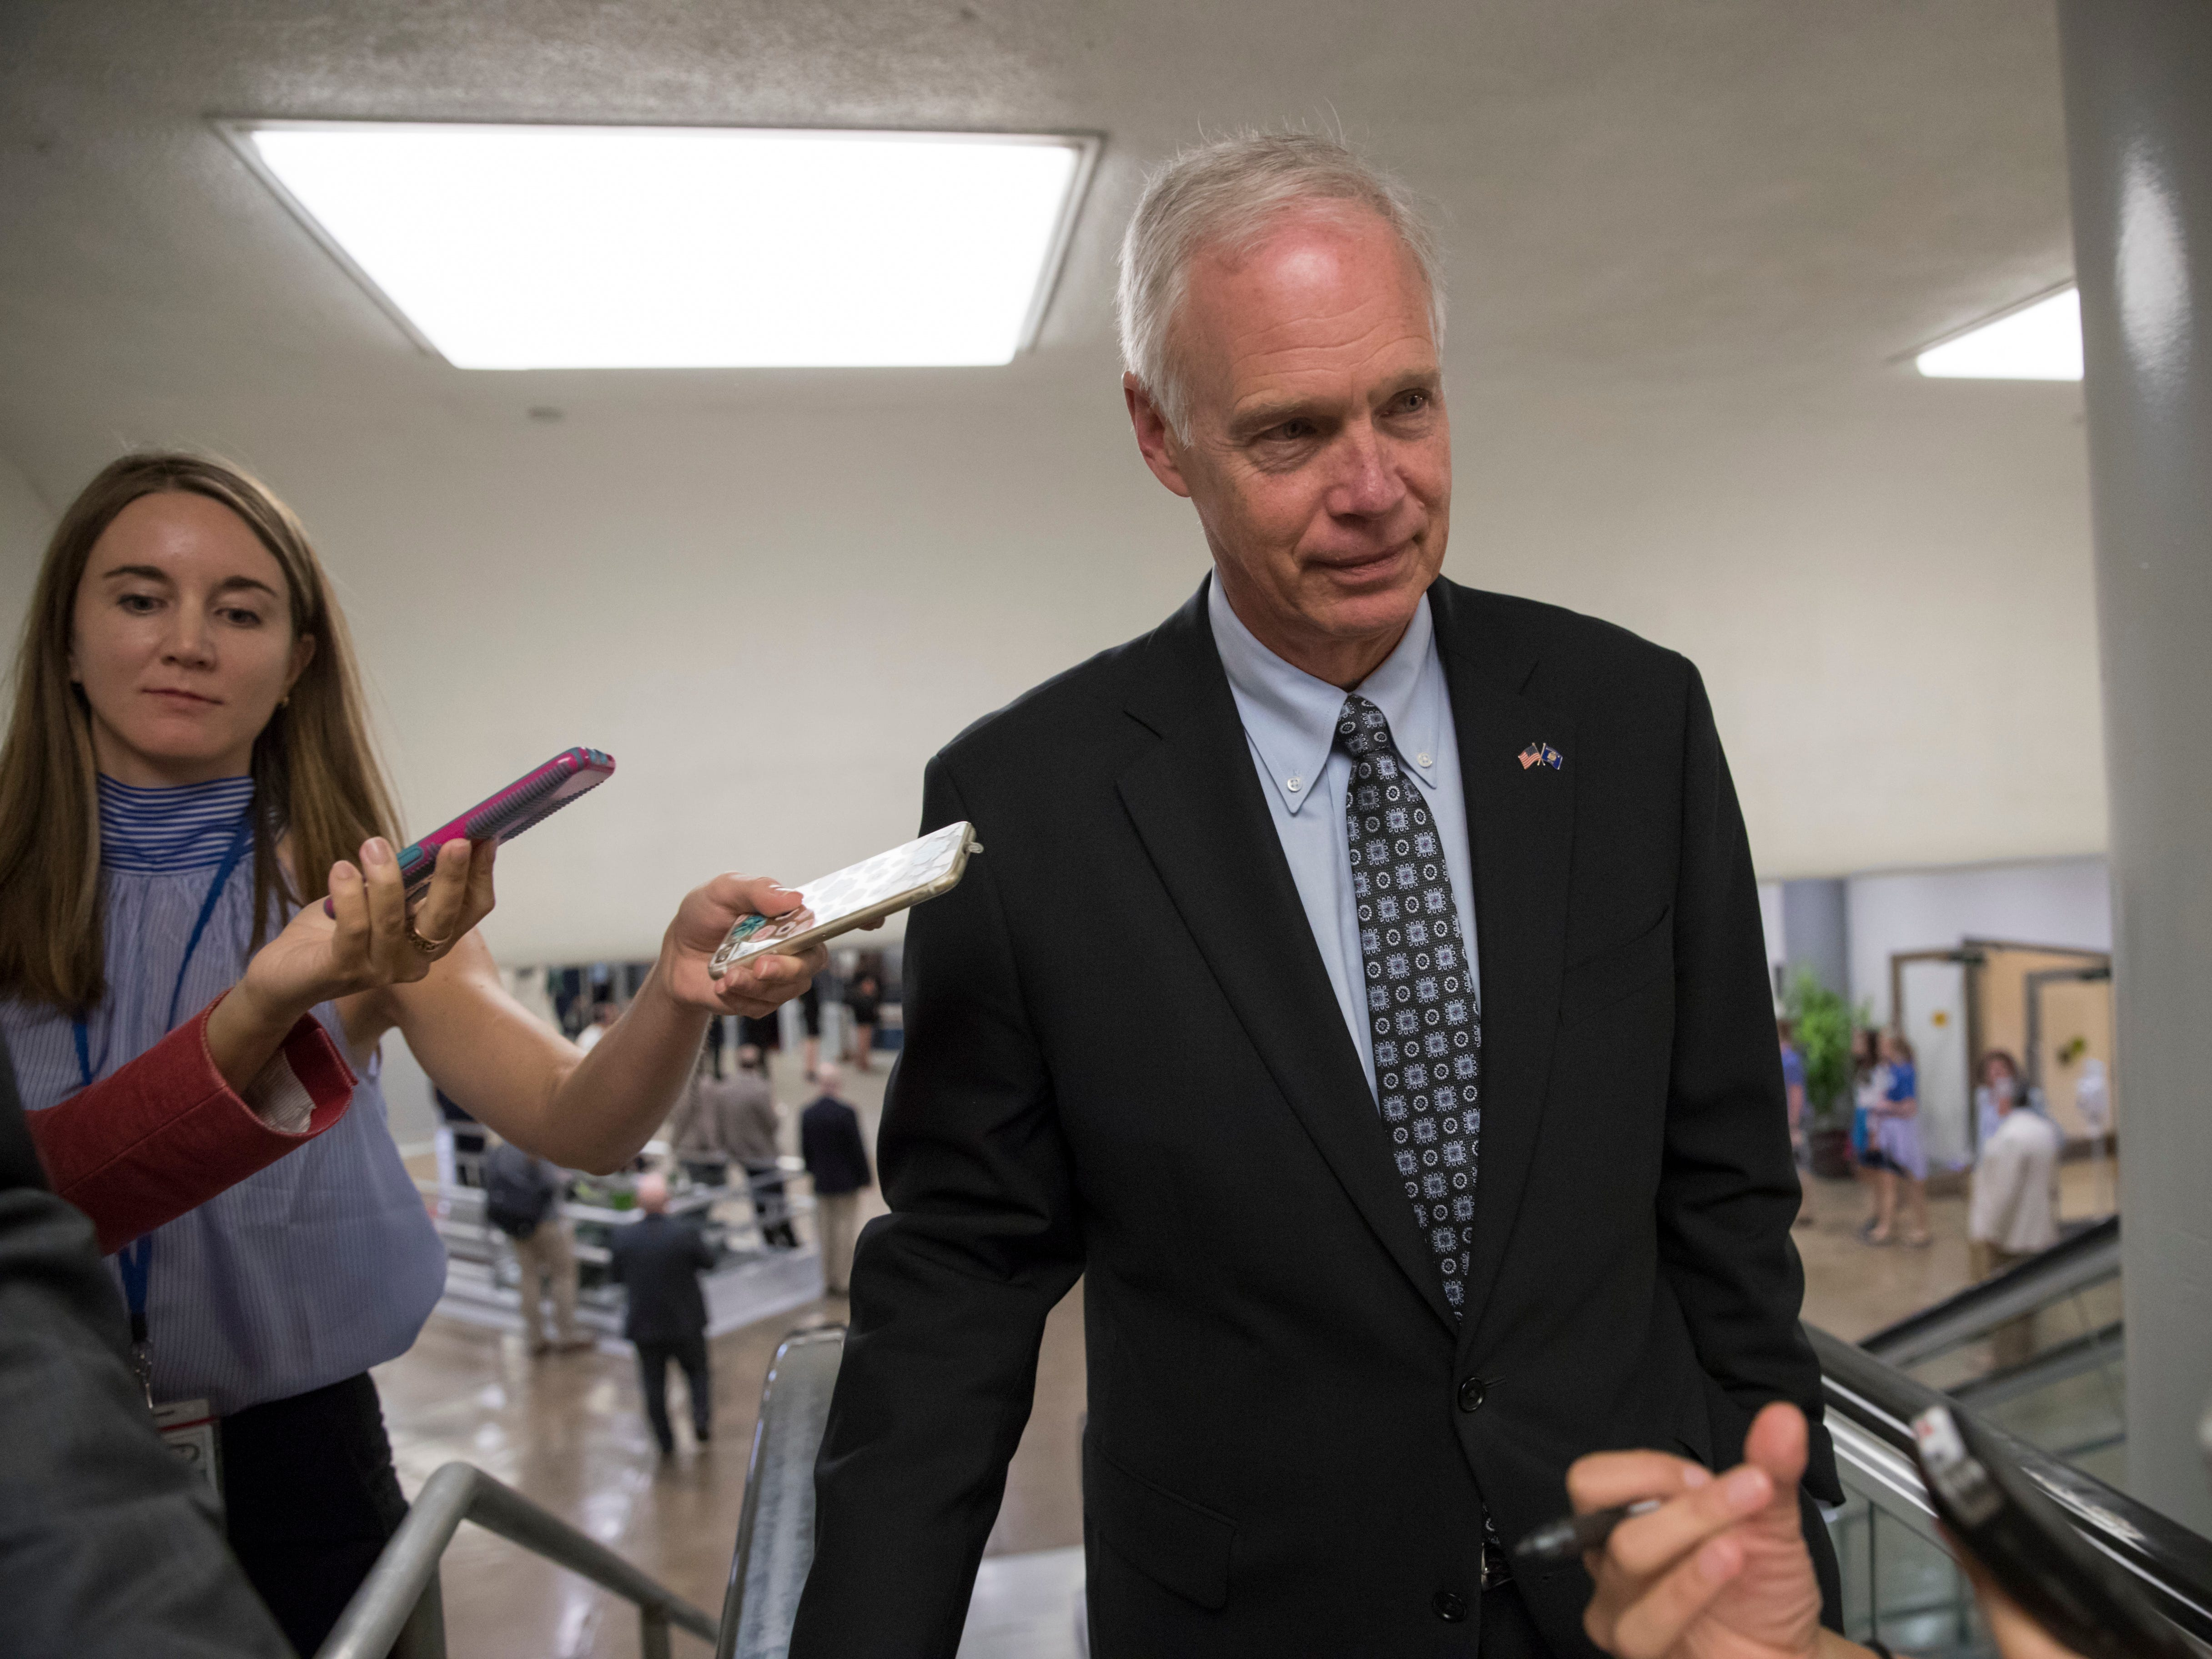 Sen. Ron Johnson, R-Wis., an opponent of the GOP health care bill, heads to the chamber for a vote, on Capitol Hill.